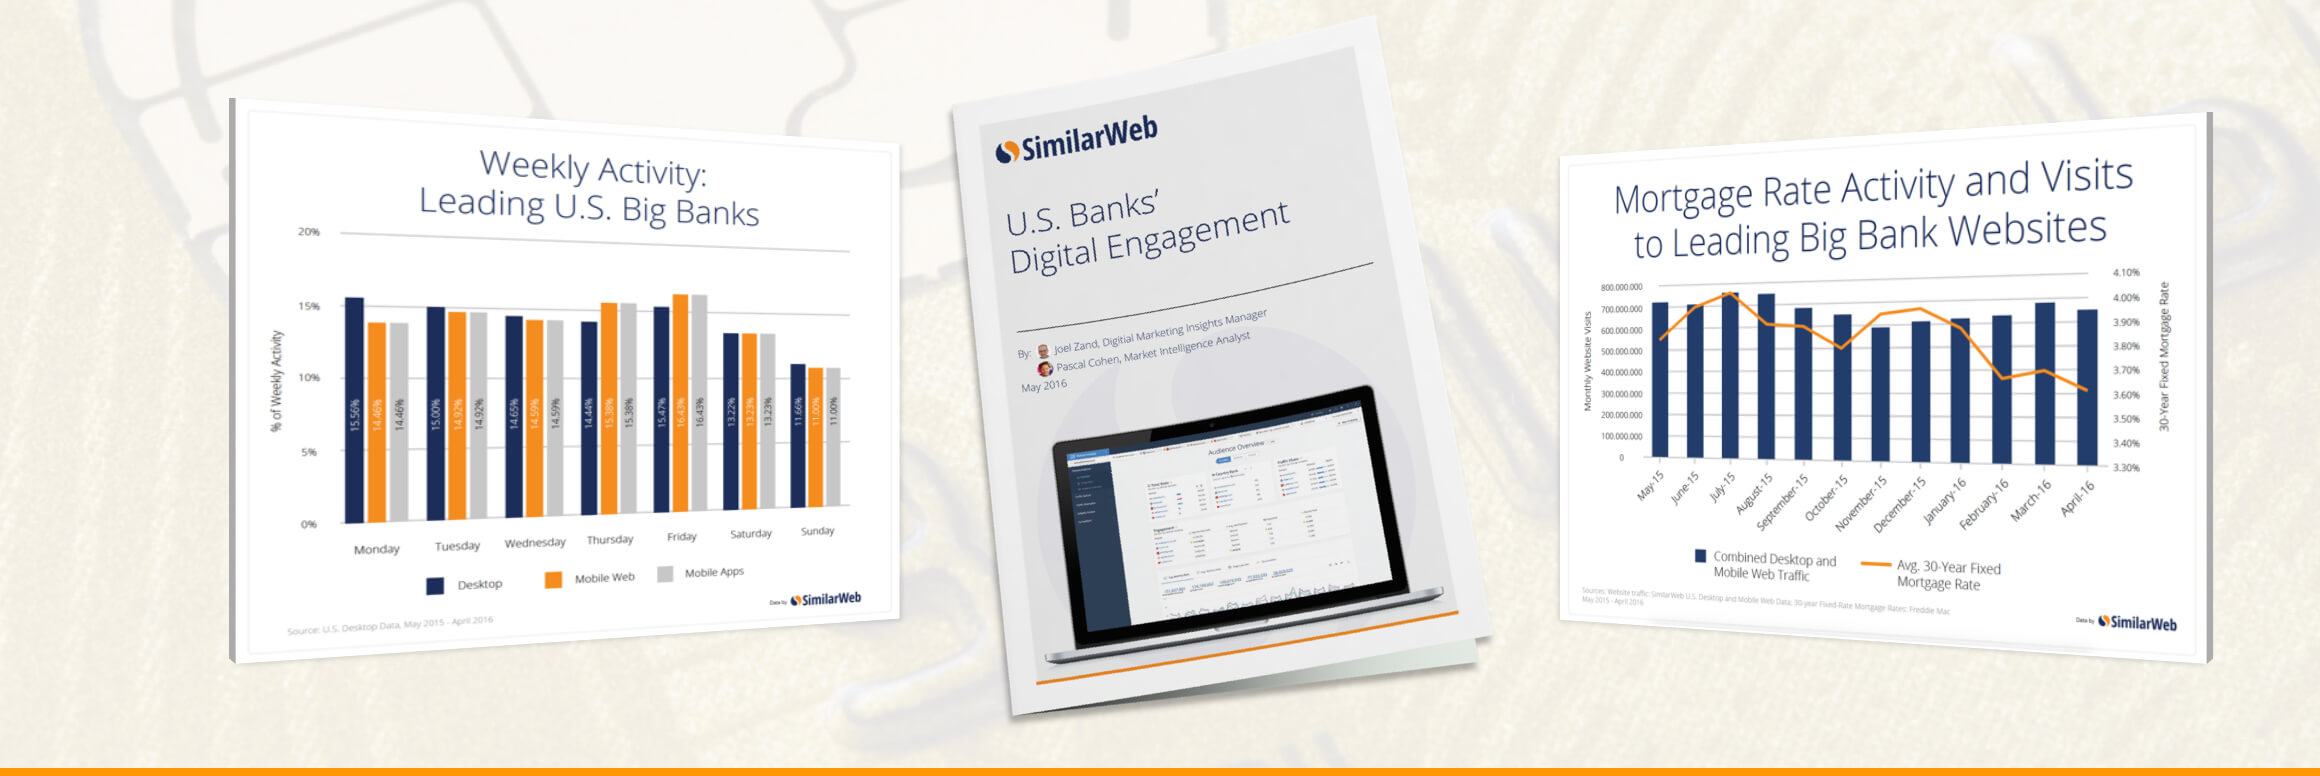 US Online Banking Industry - Engagement Overview May 15' - Apr 16'